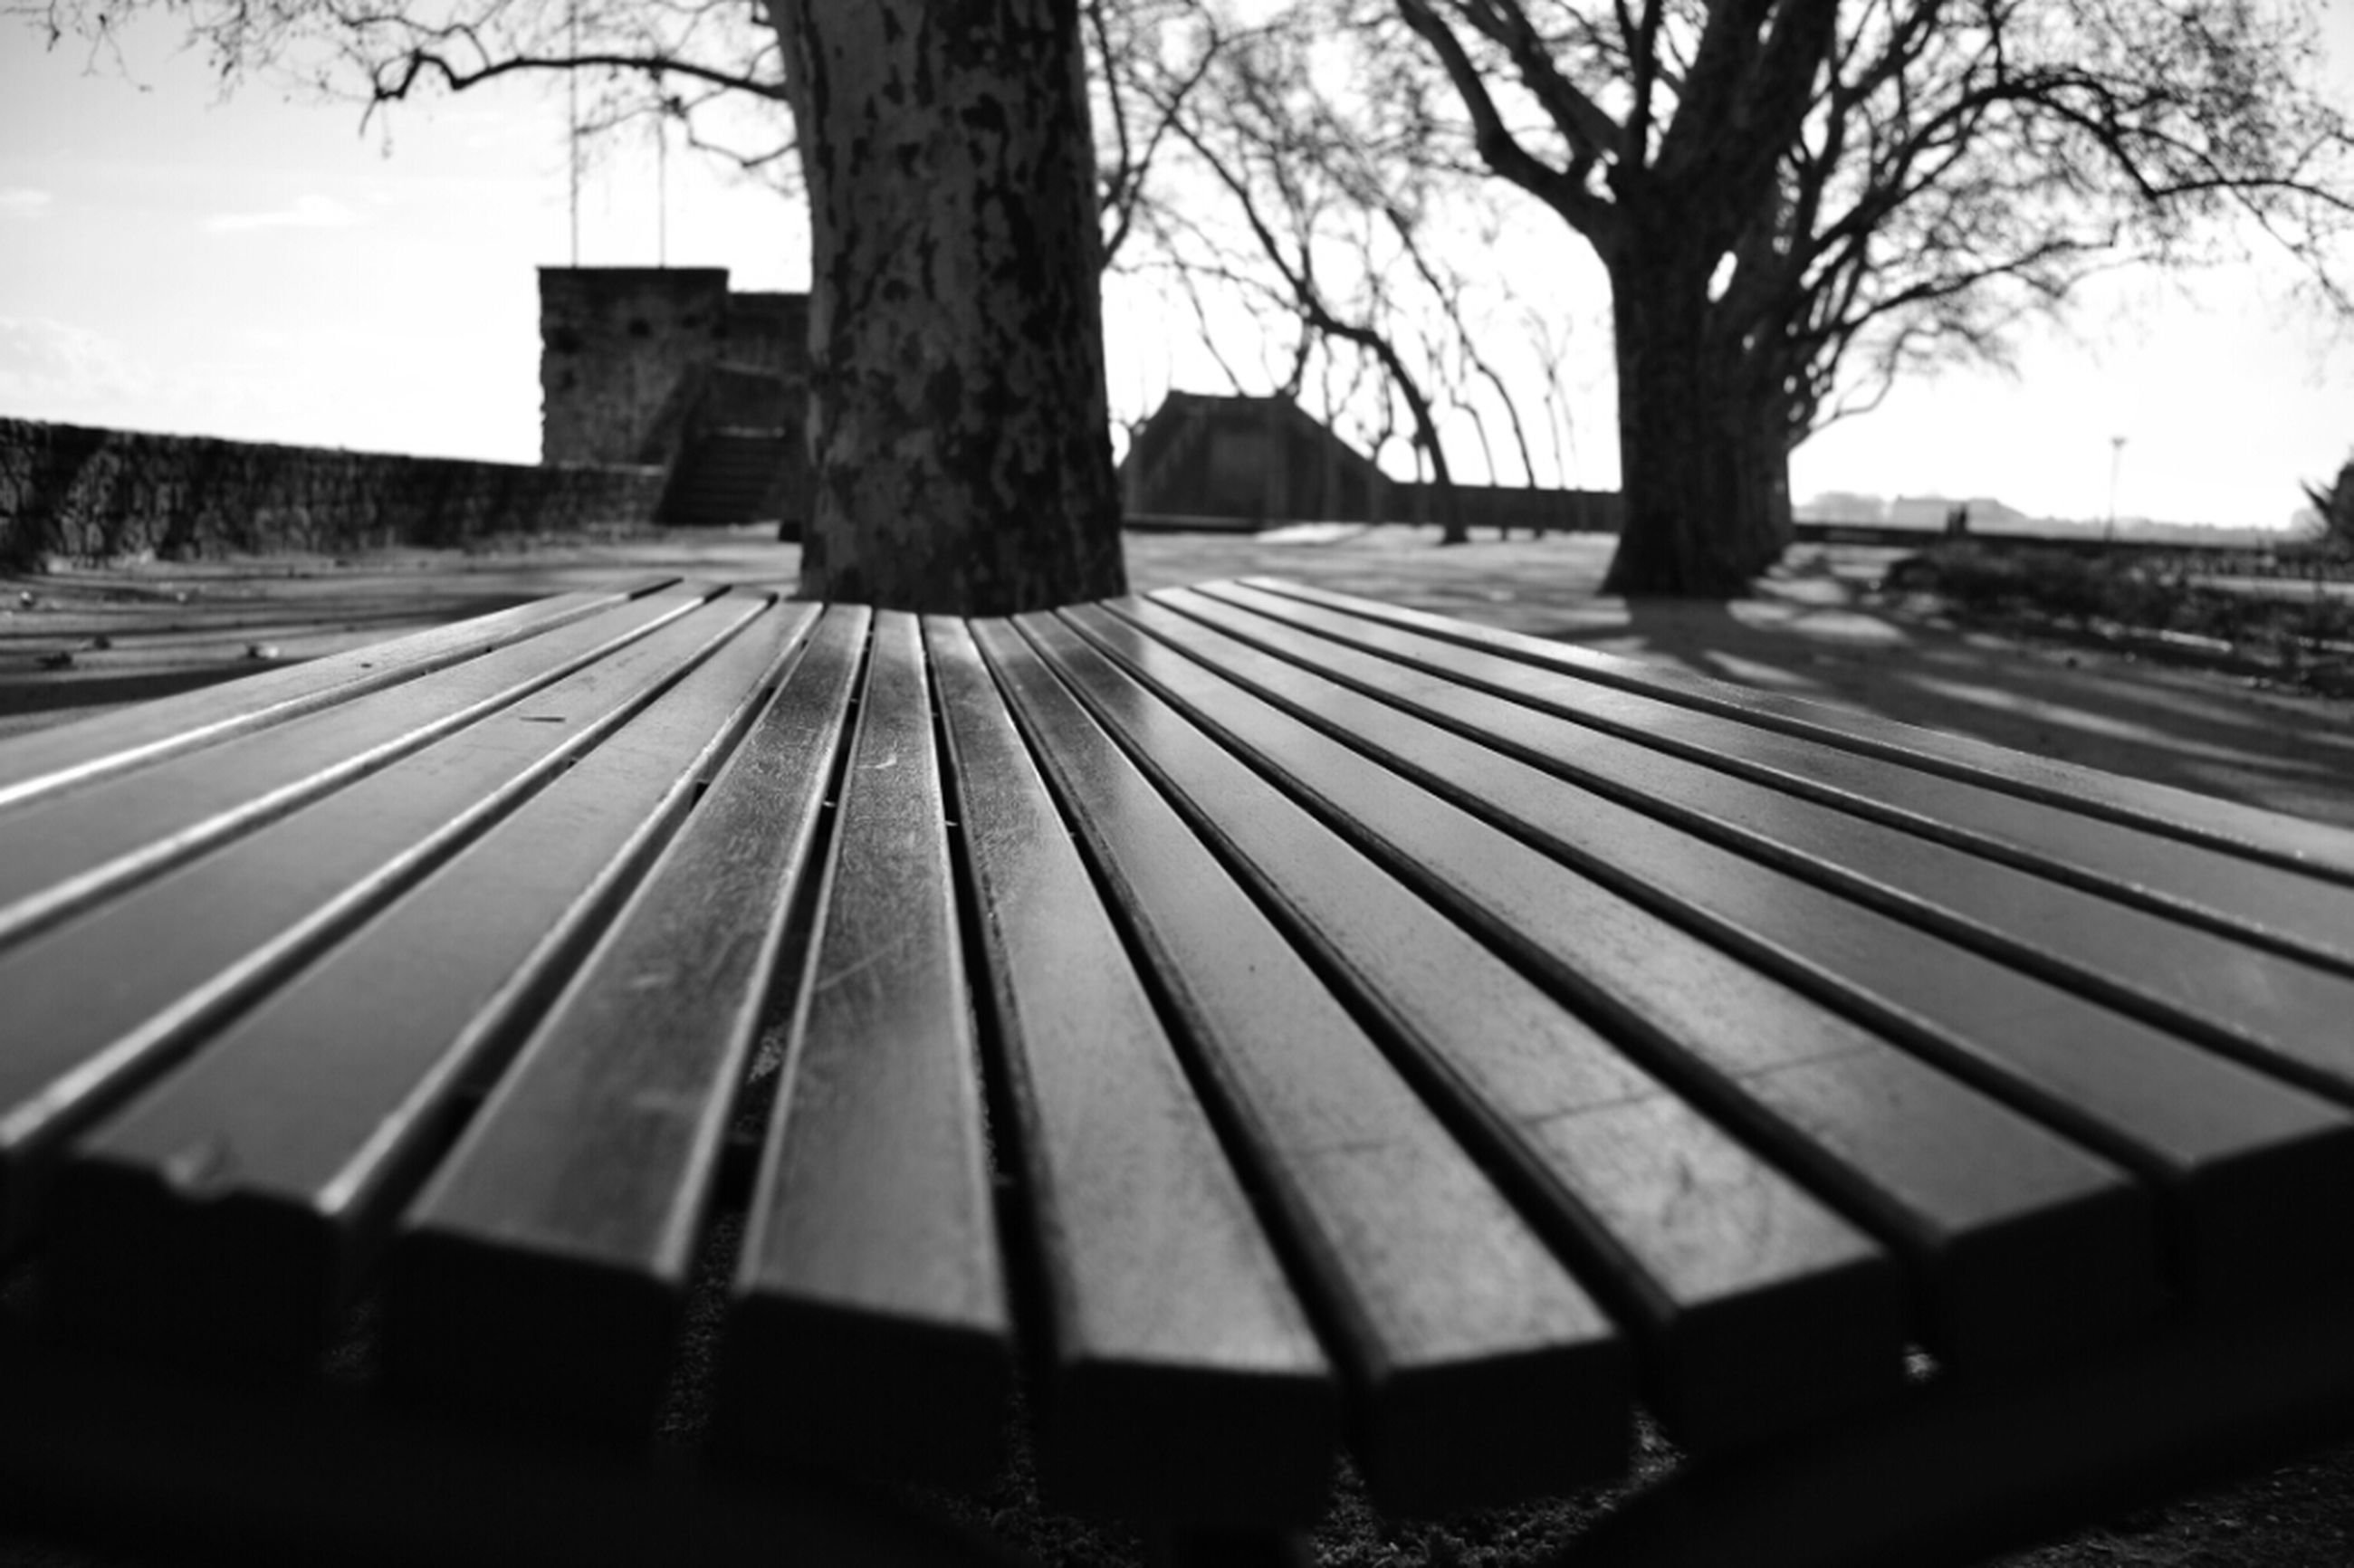 tree, railing, sky, bare tree, shadow, transportation, the way forward, bench, sunlight, fence, silhouette, wood - material, outdoors, empty, day, built structure, focus on foreground, no people, surface level, selective focus